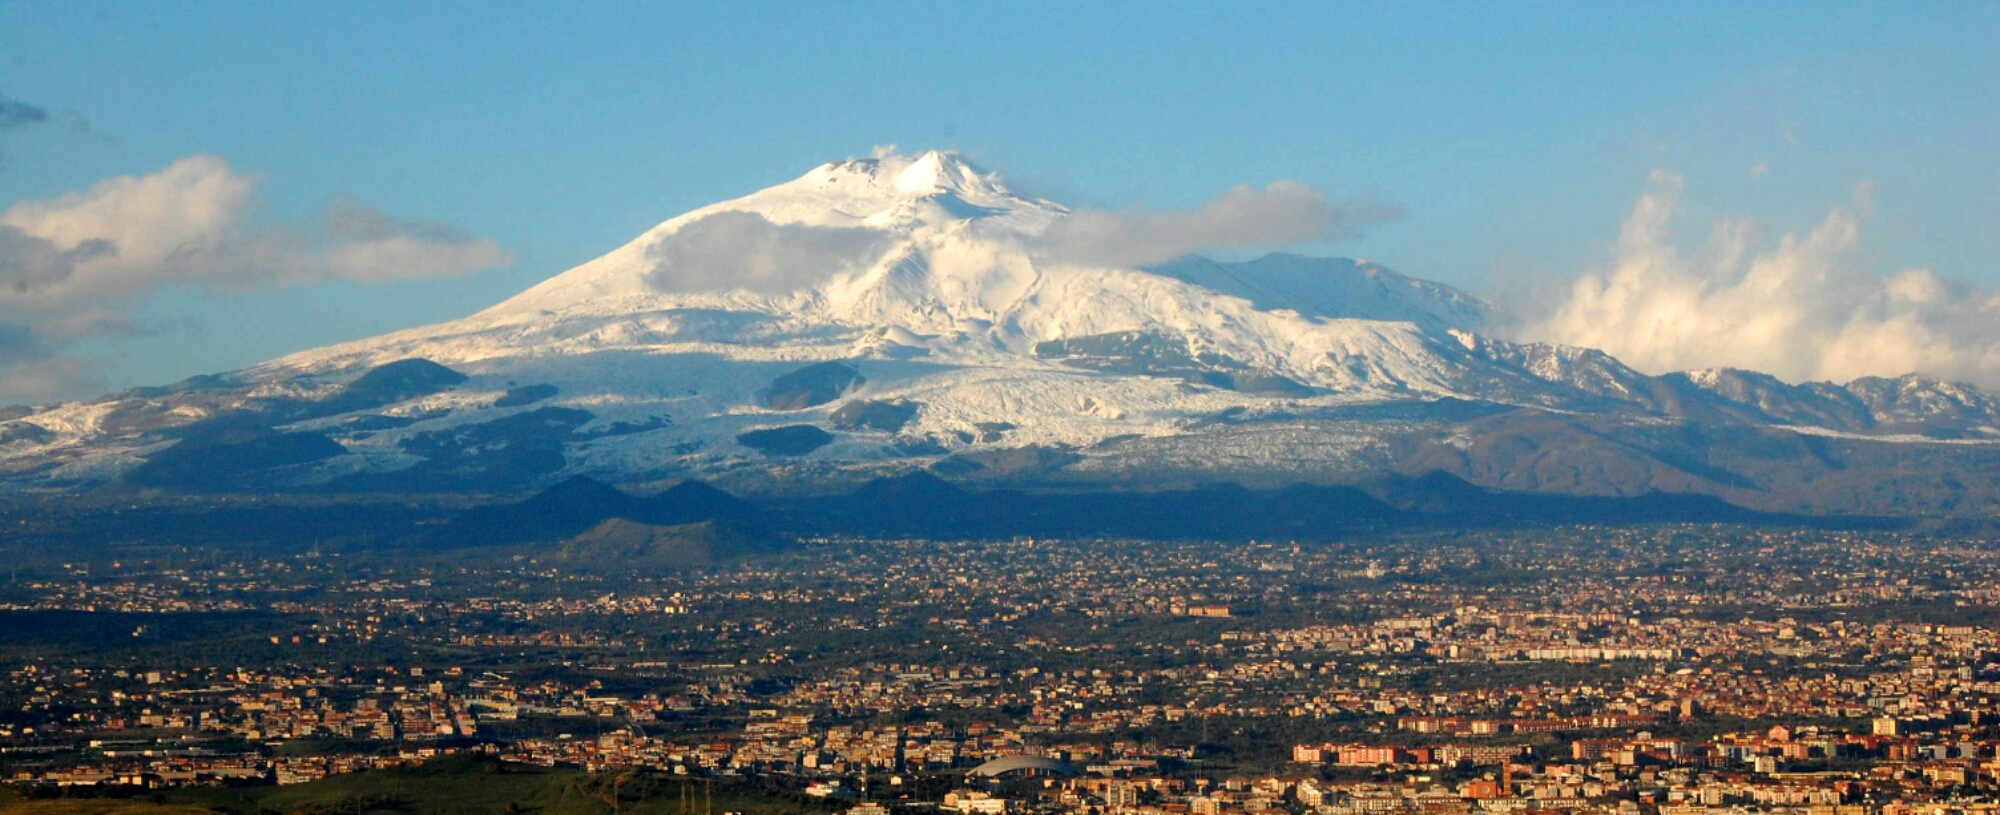 wpid-mt_etna_and_catania1.jpg